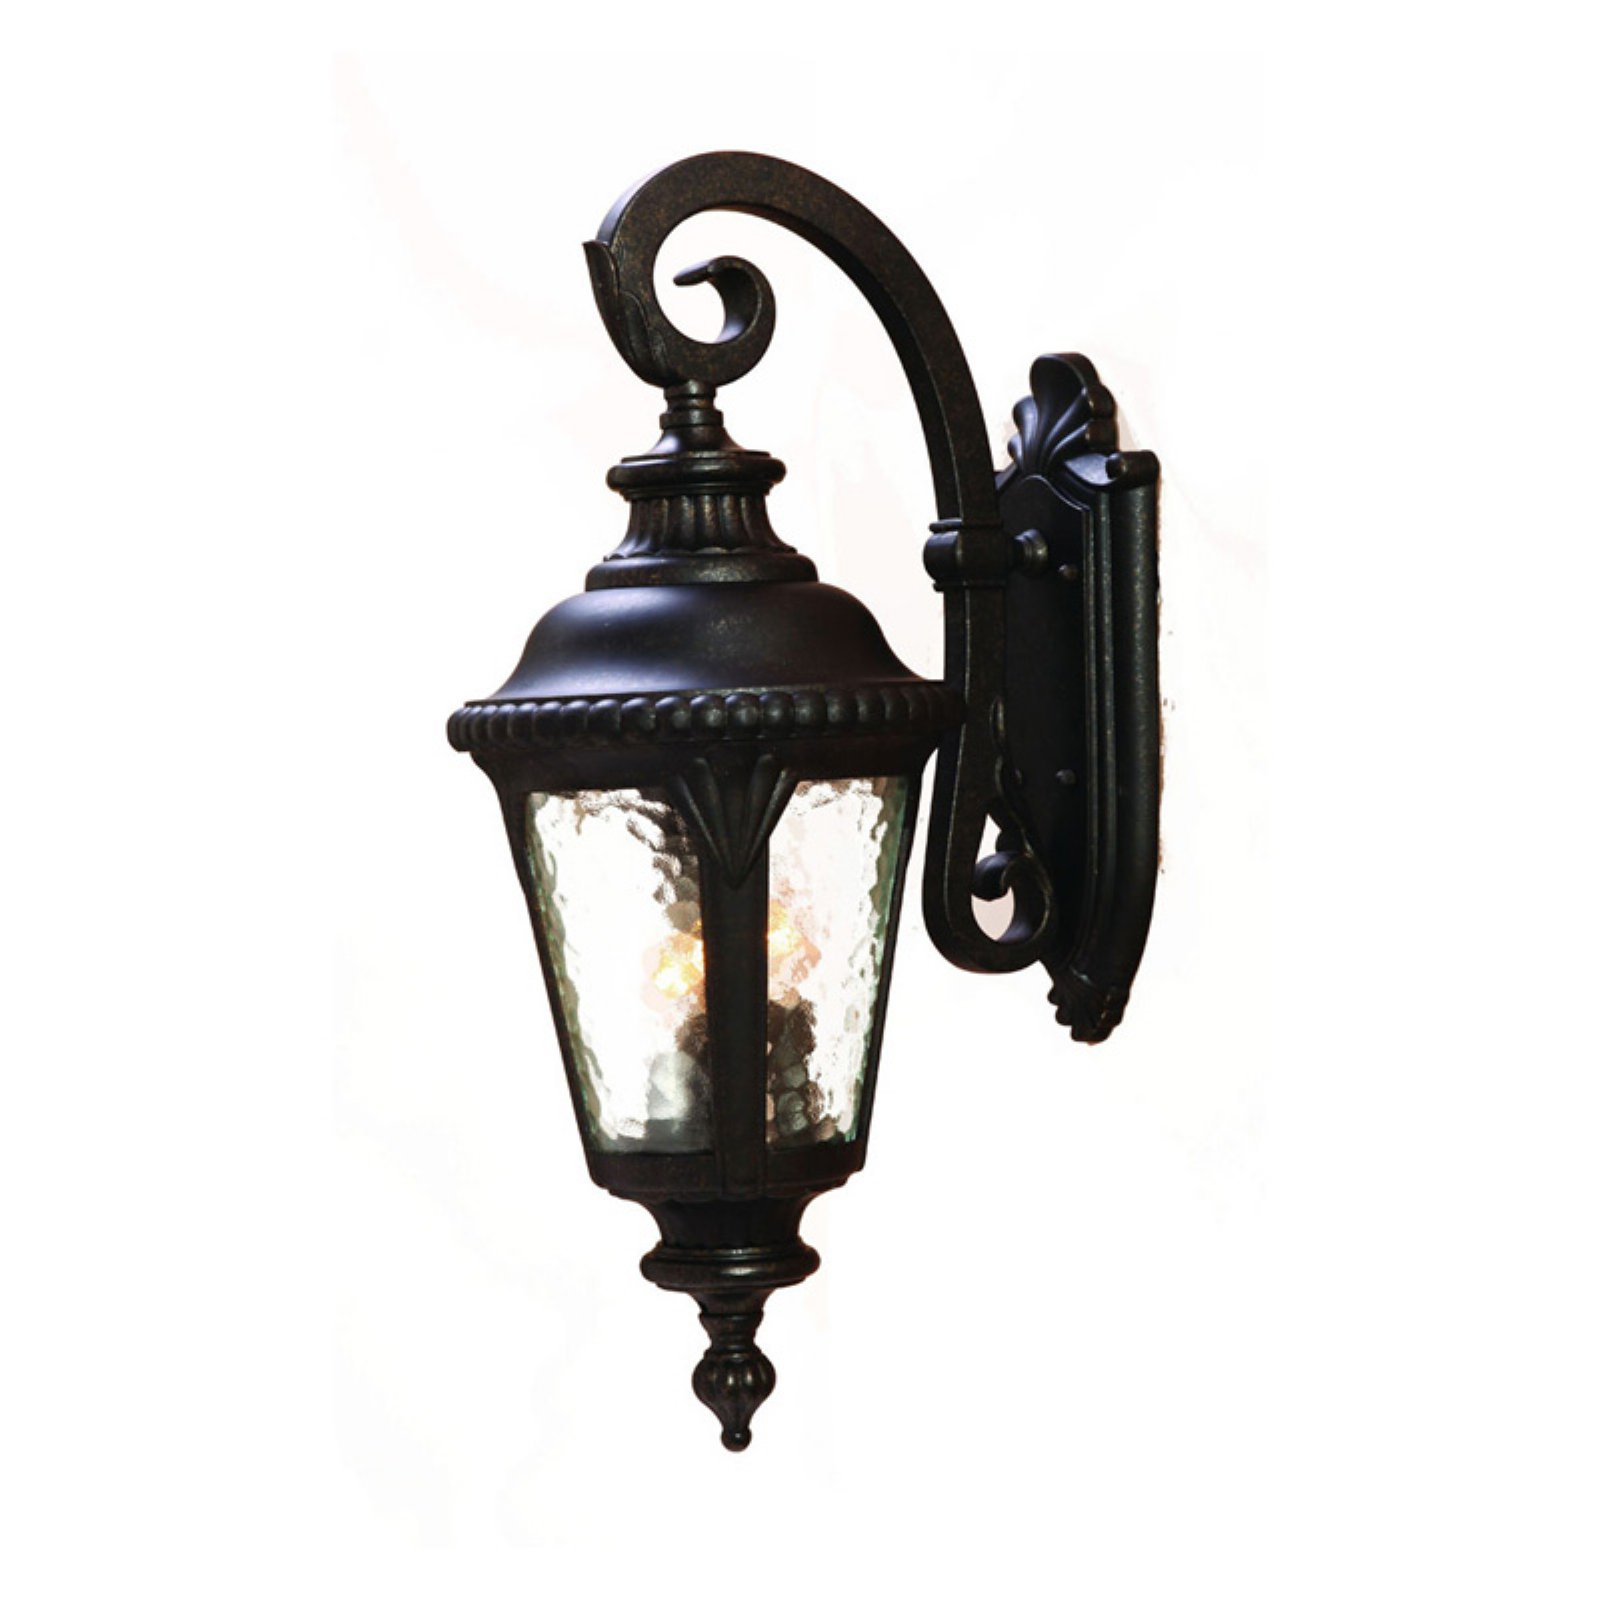 Acclaim Lighting Surrey 9.75 in. Outdoor Wall Mount Light Fixture